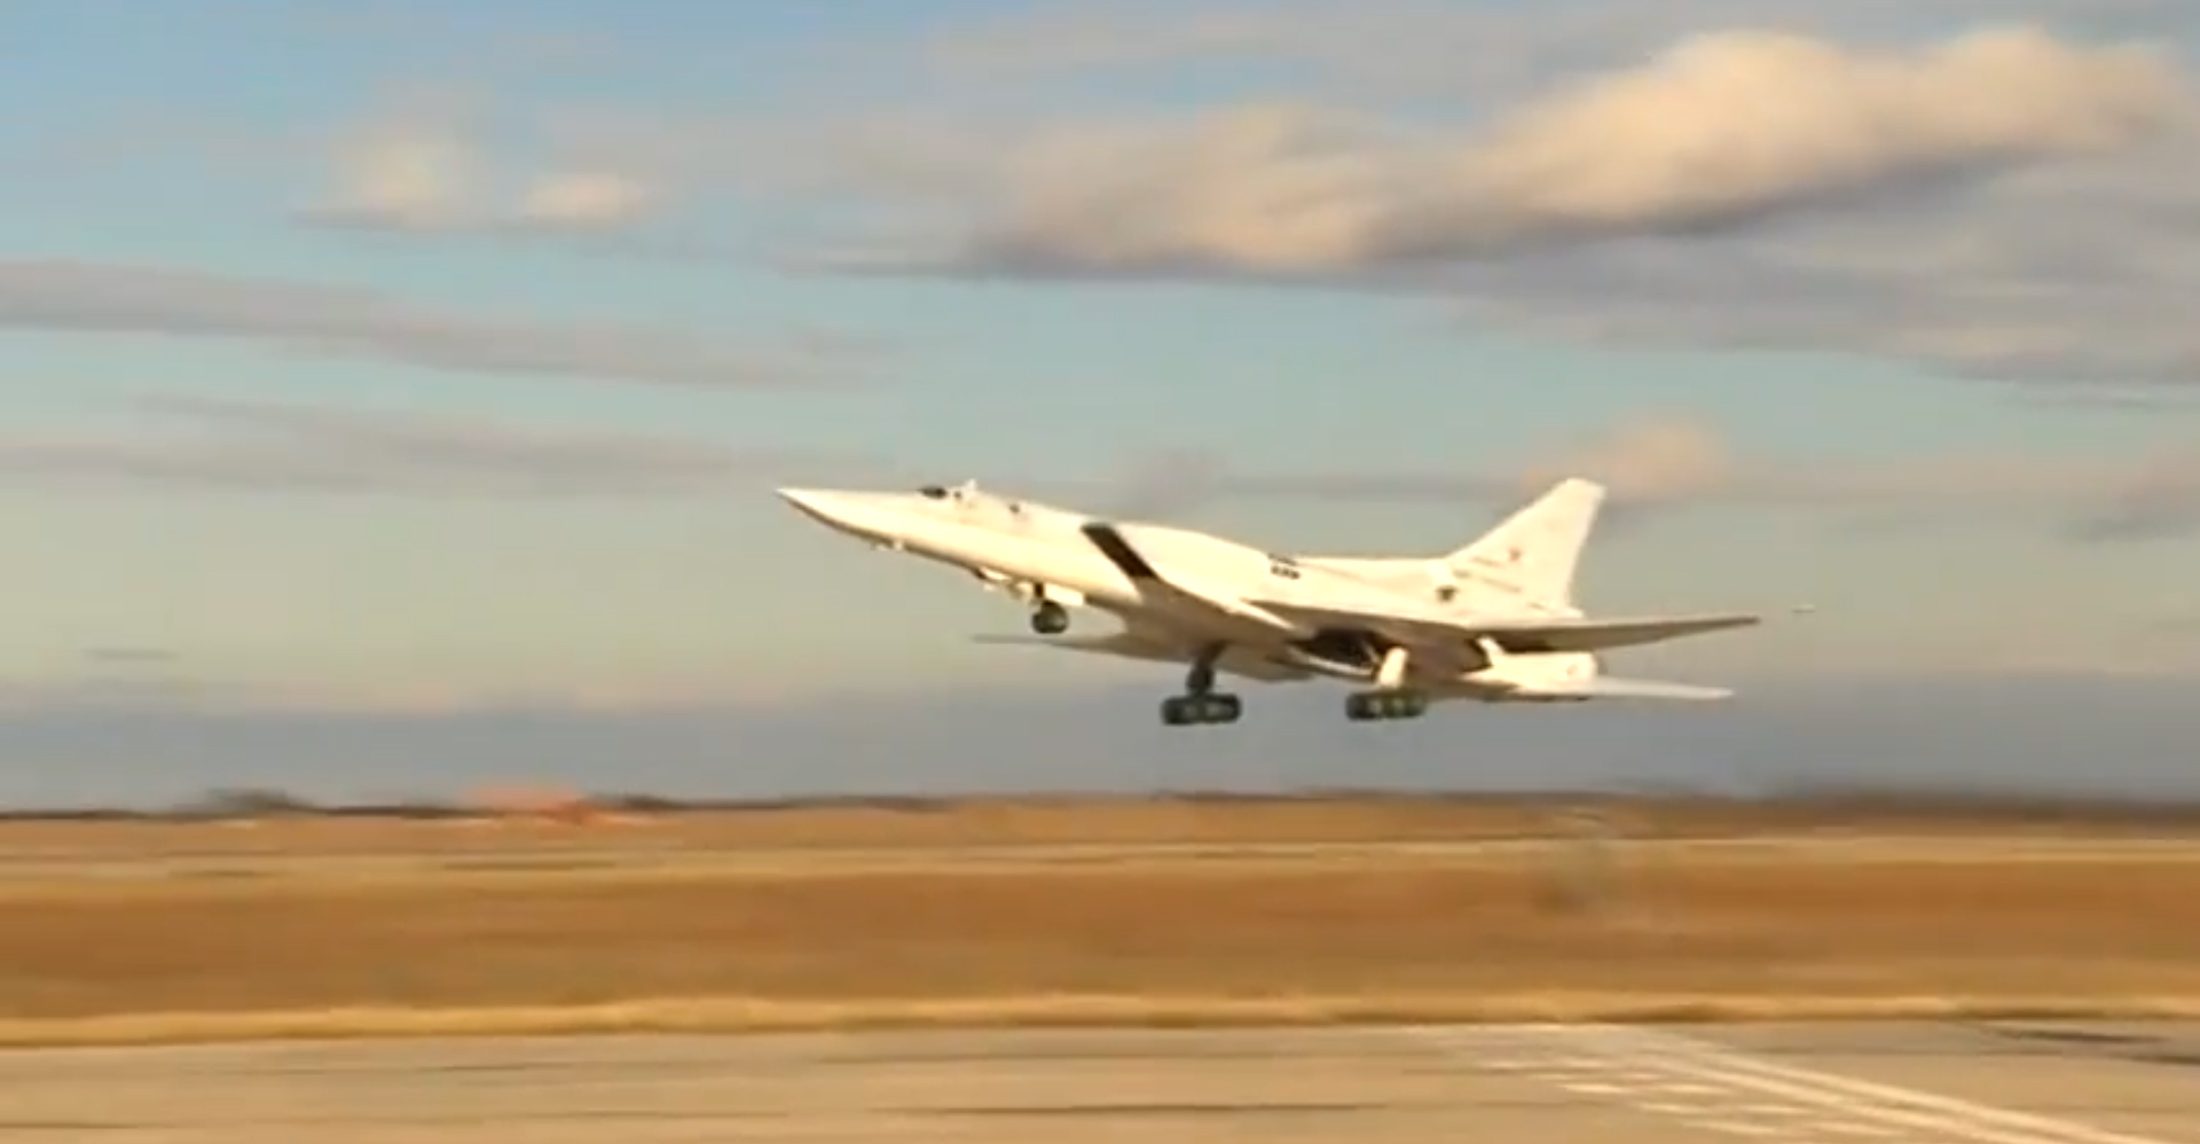 A handout frame grab from video footage published on the official website of the Russian Defense Ministry on Nov. 18, 2015, shows Russian TU-22M3 long-range strategic bomber based in Russia taking off for mission in Syria